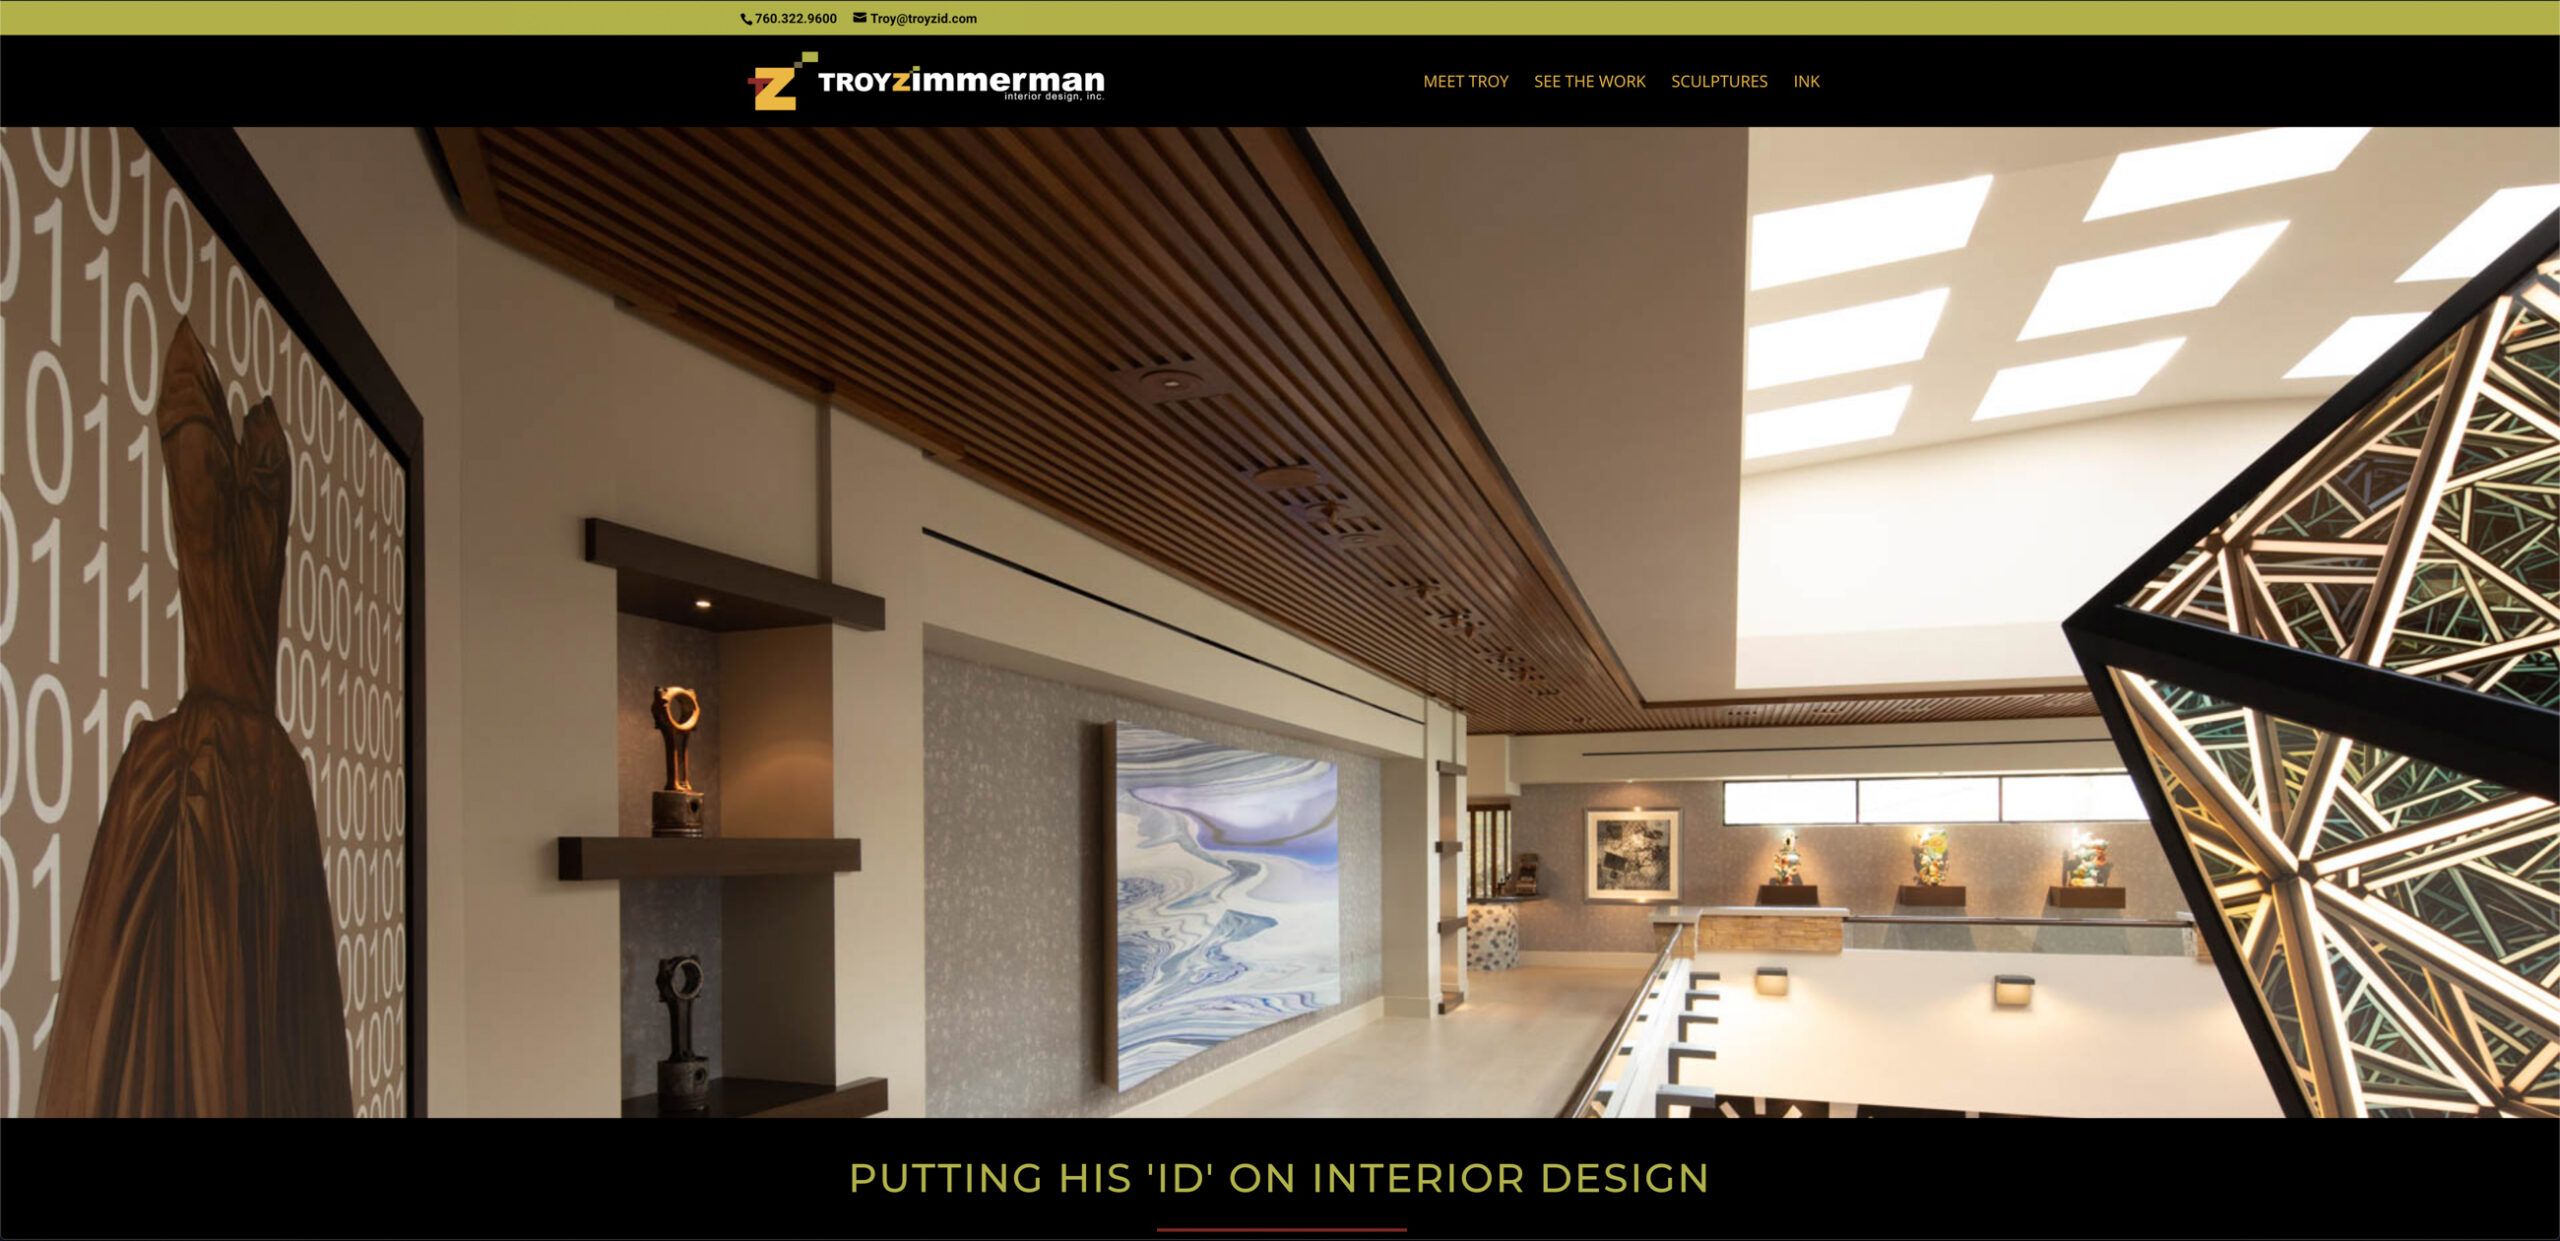 custom website design for troy zimmerman interior design by kaminsky productions